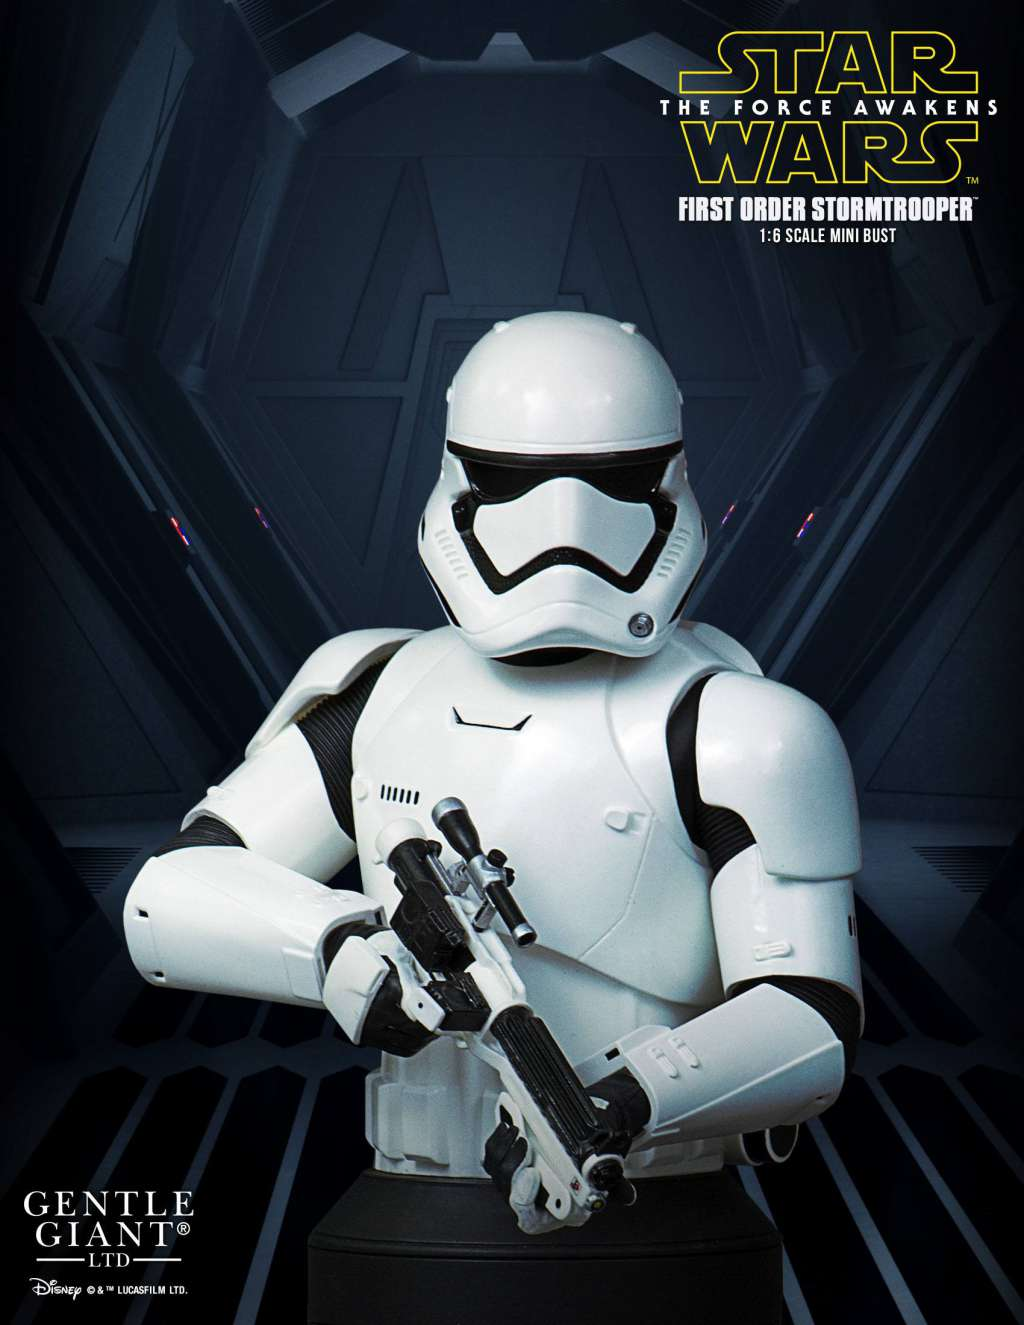 Star Wars Episodio VII Busto First Order Stormtrooper Deluxe MB 02